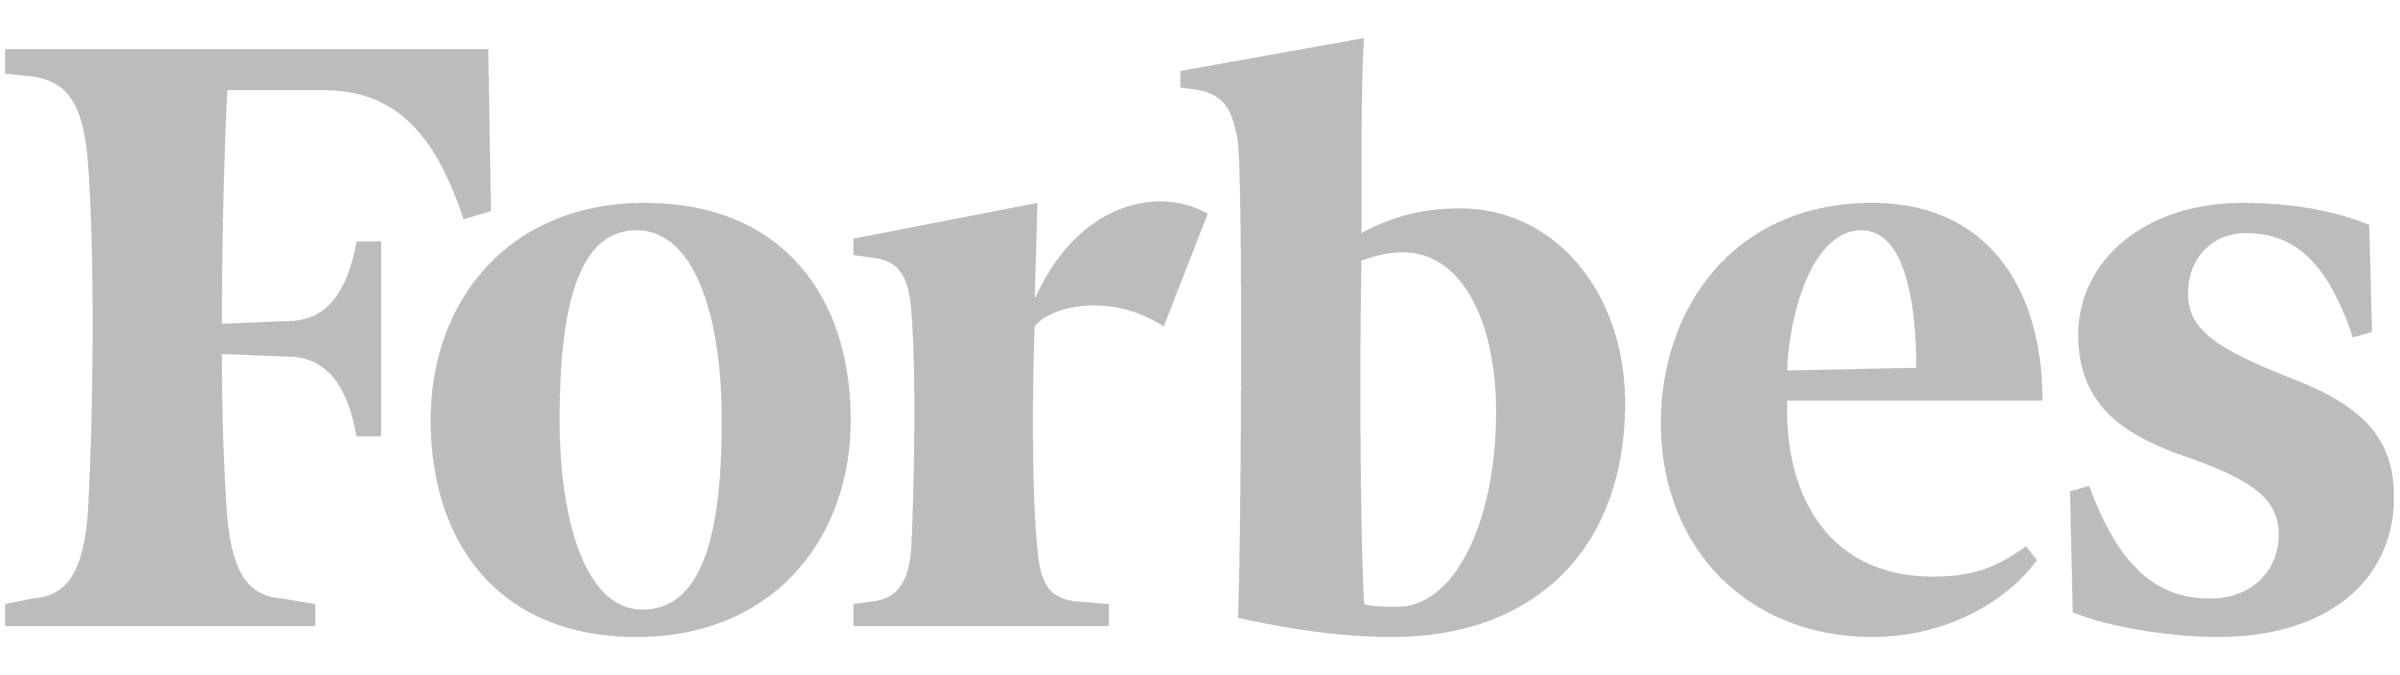 Forbes logo png. Edited the renegade pharmacist